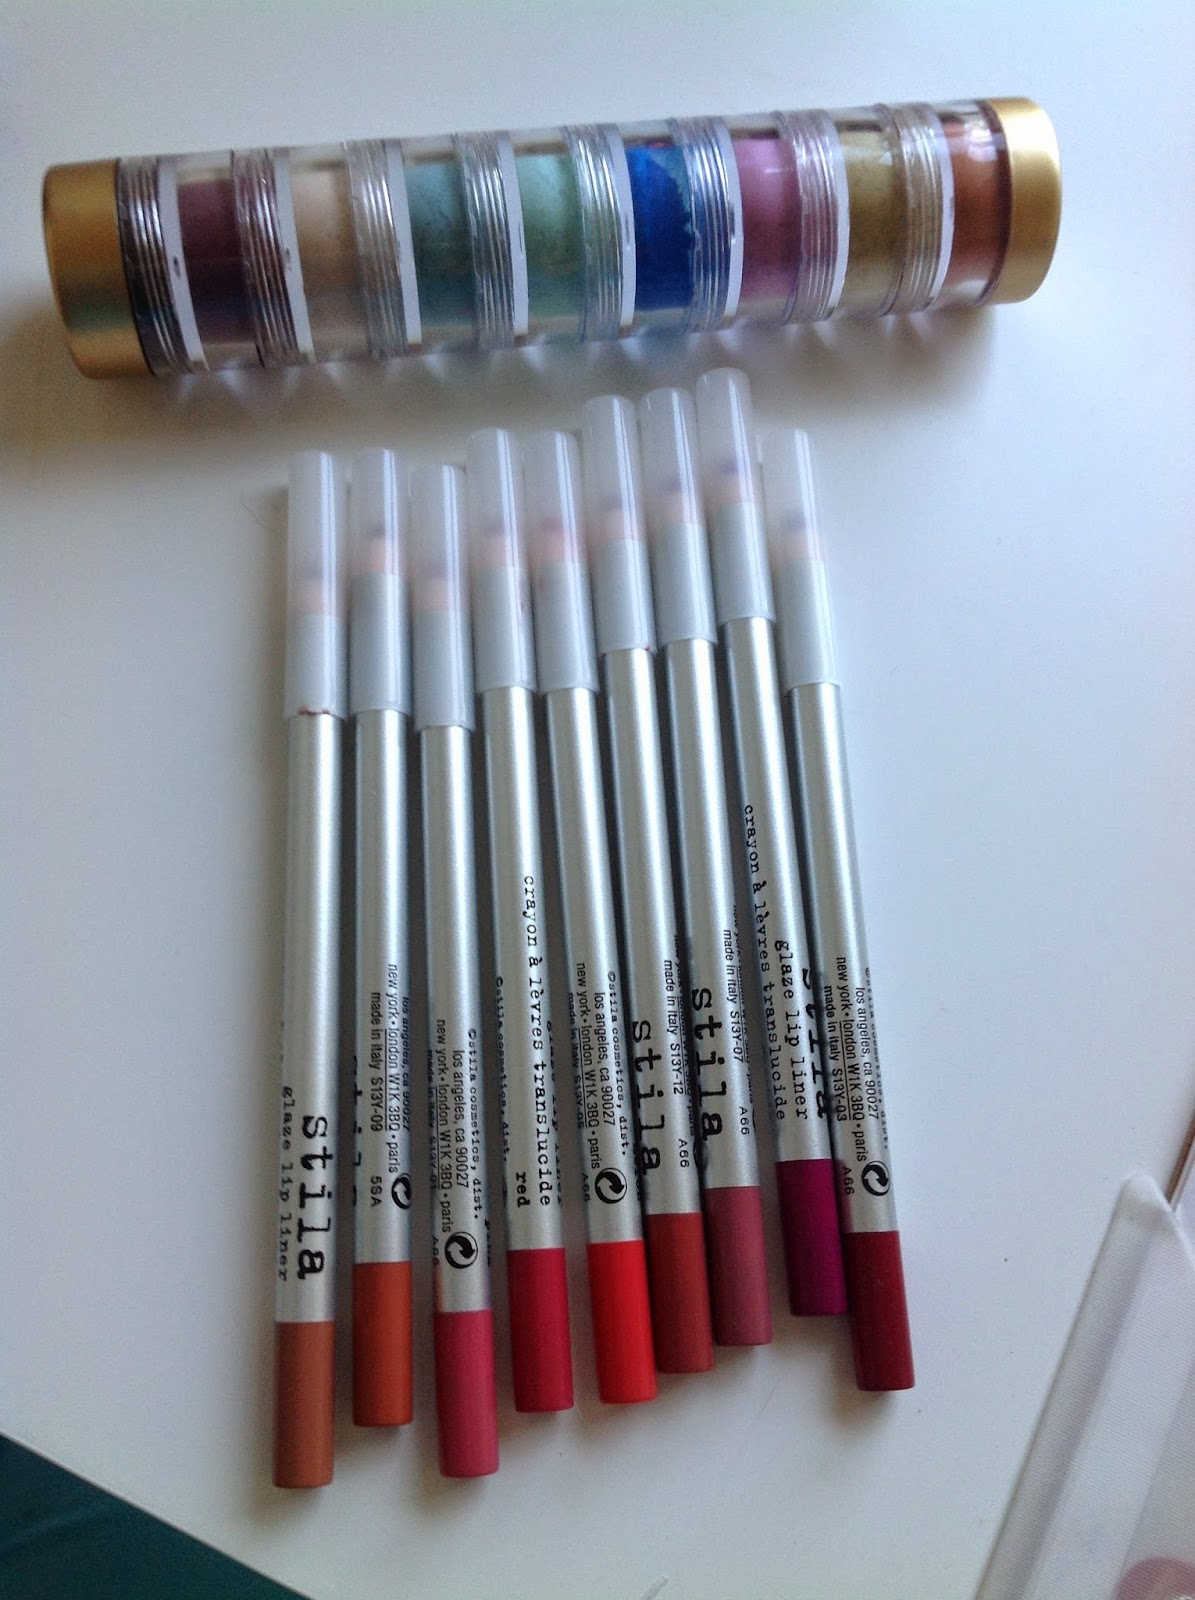 Stila Amore Dupe: The Carsonian Collection